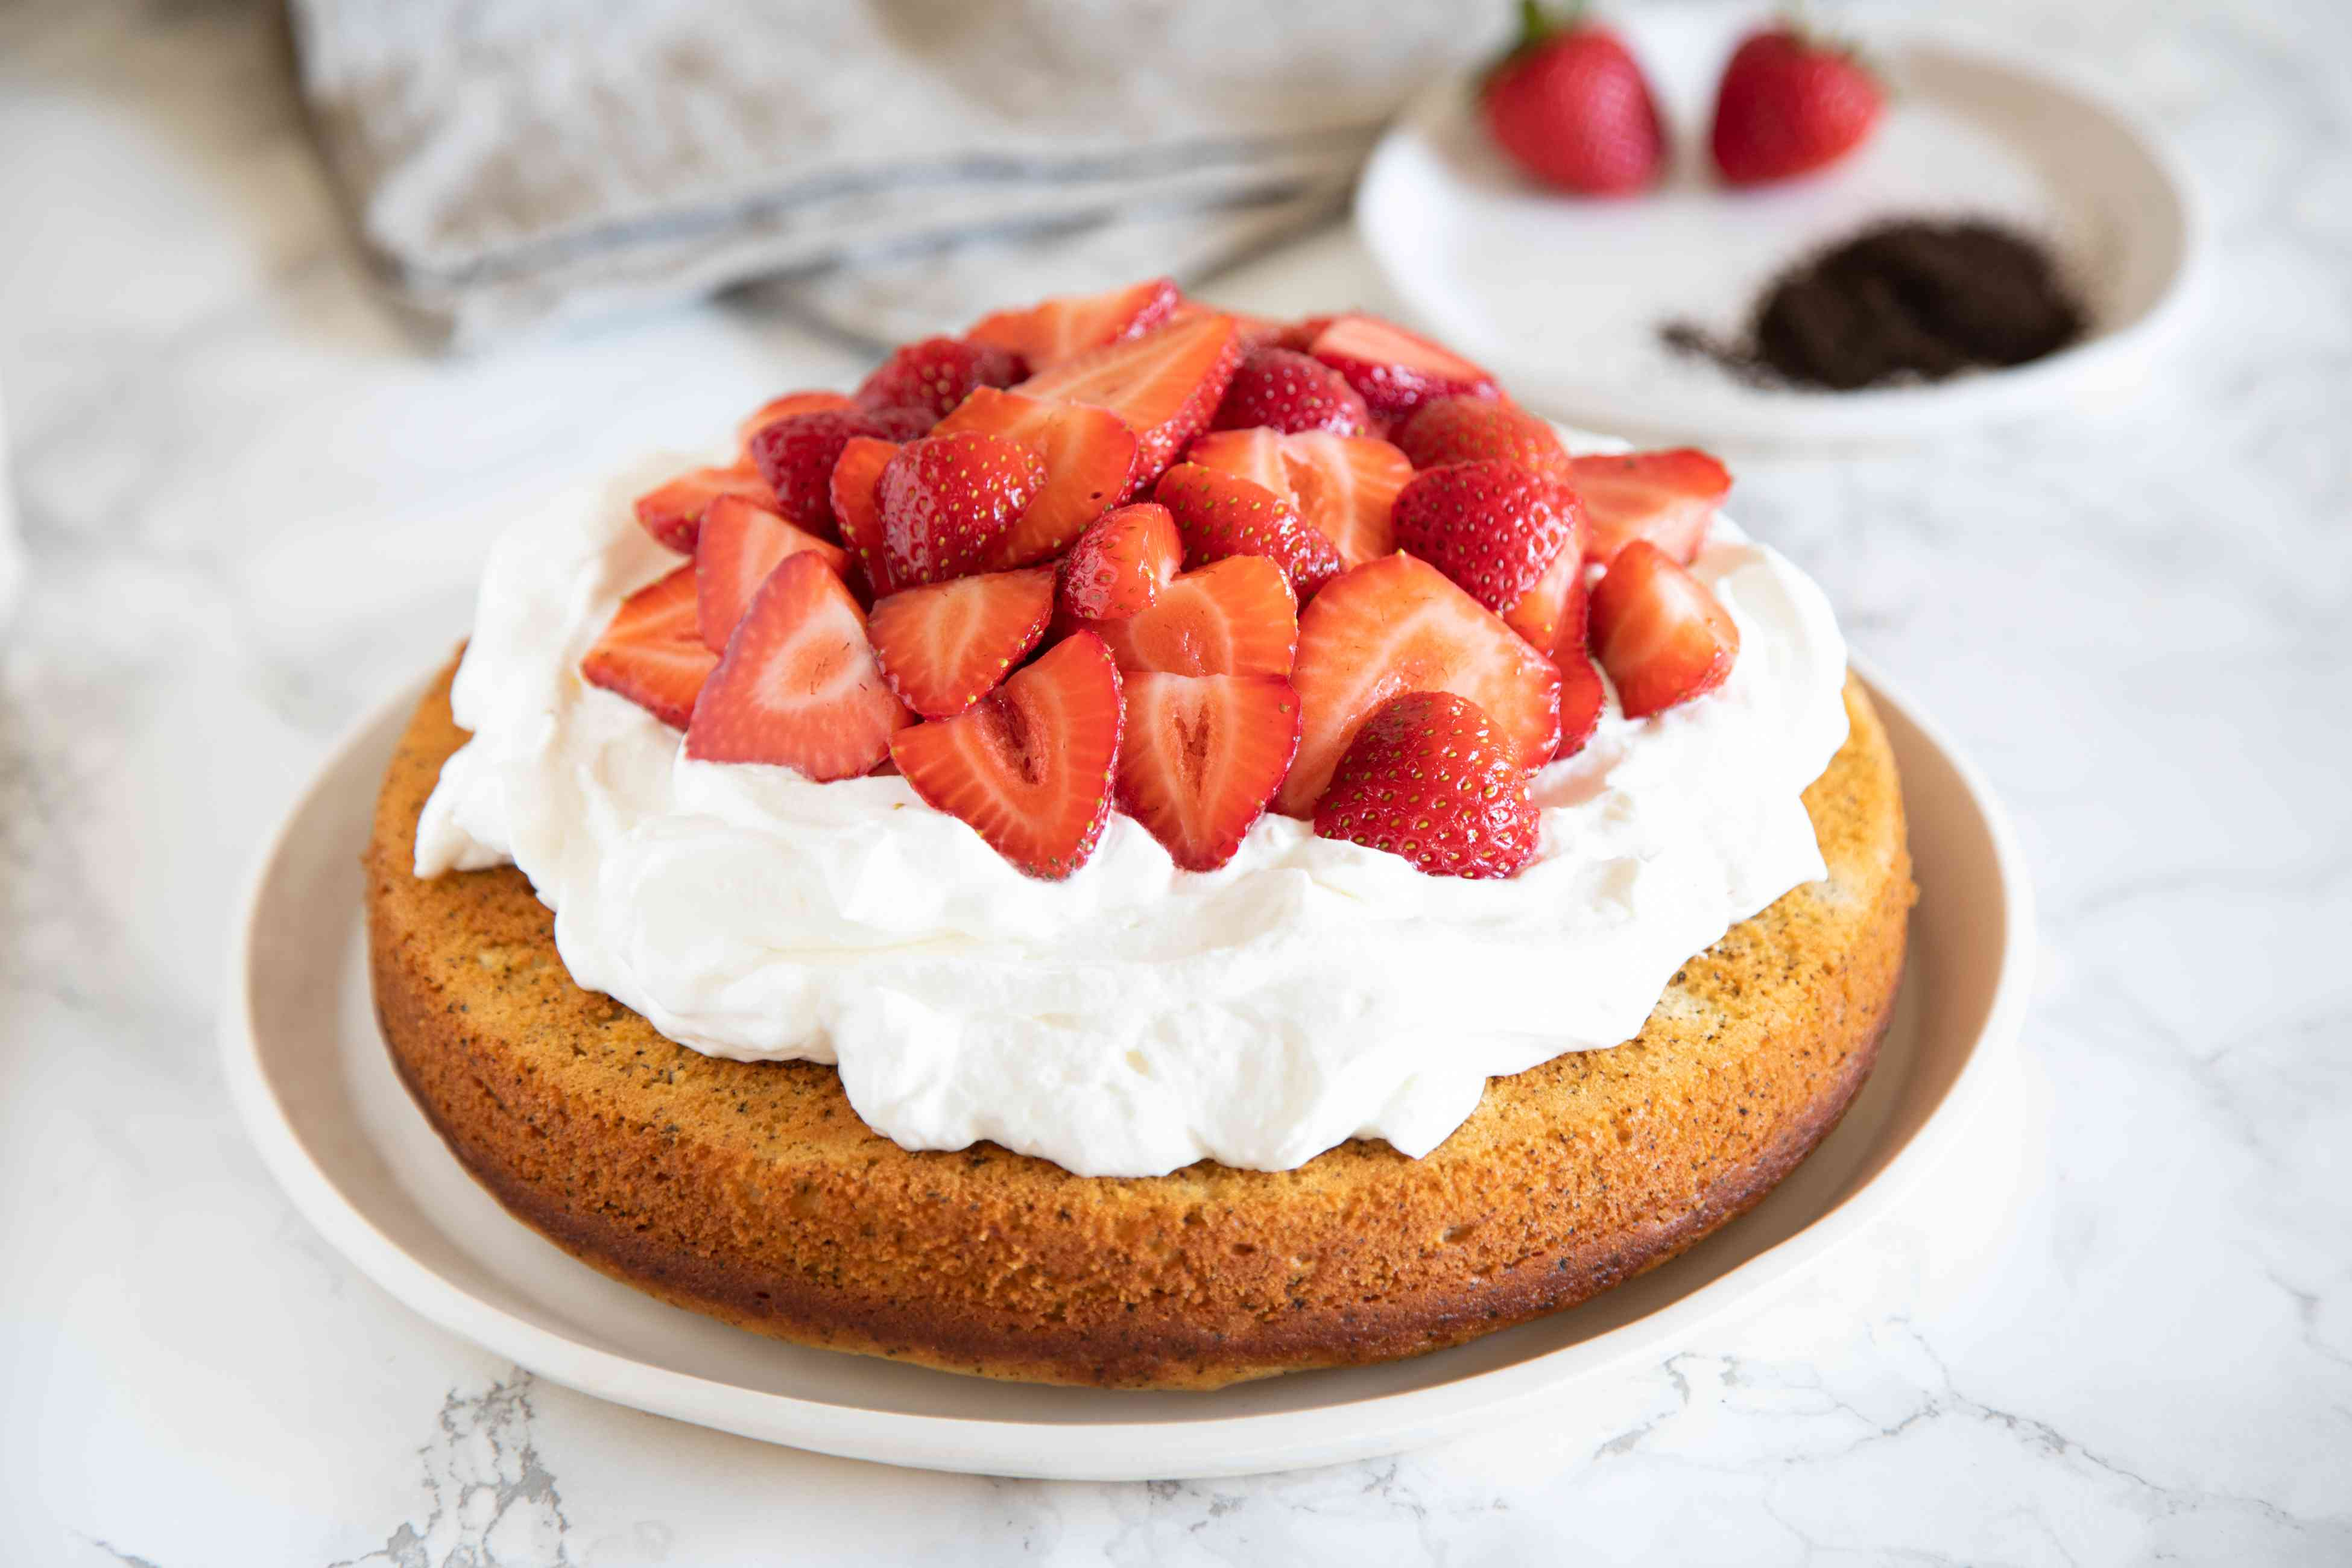 Earl Grey Yogurt Cake on a white platter and topped with whipped cream and strawberries.